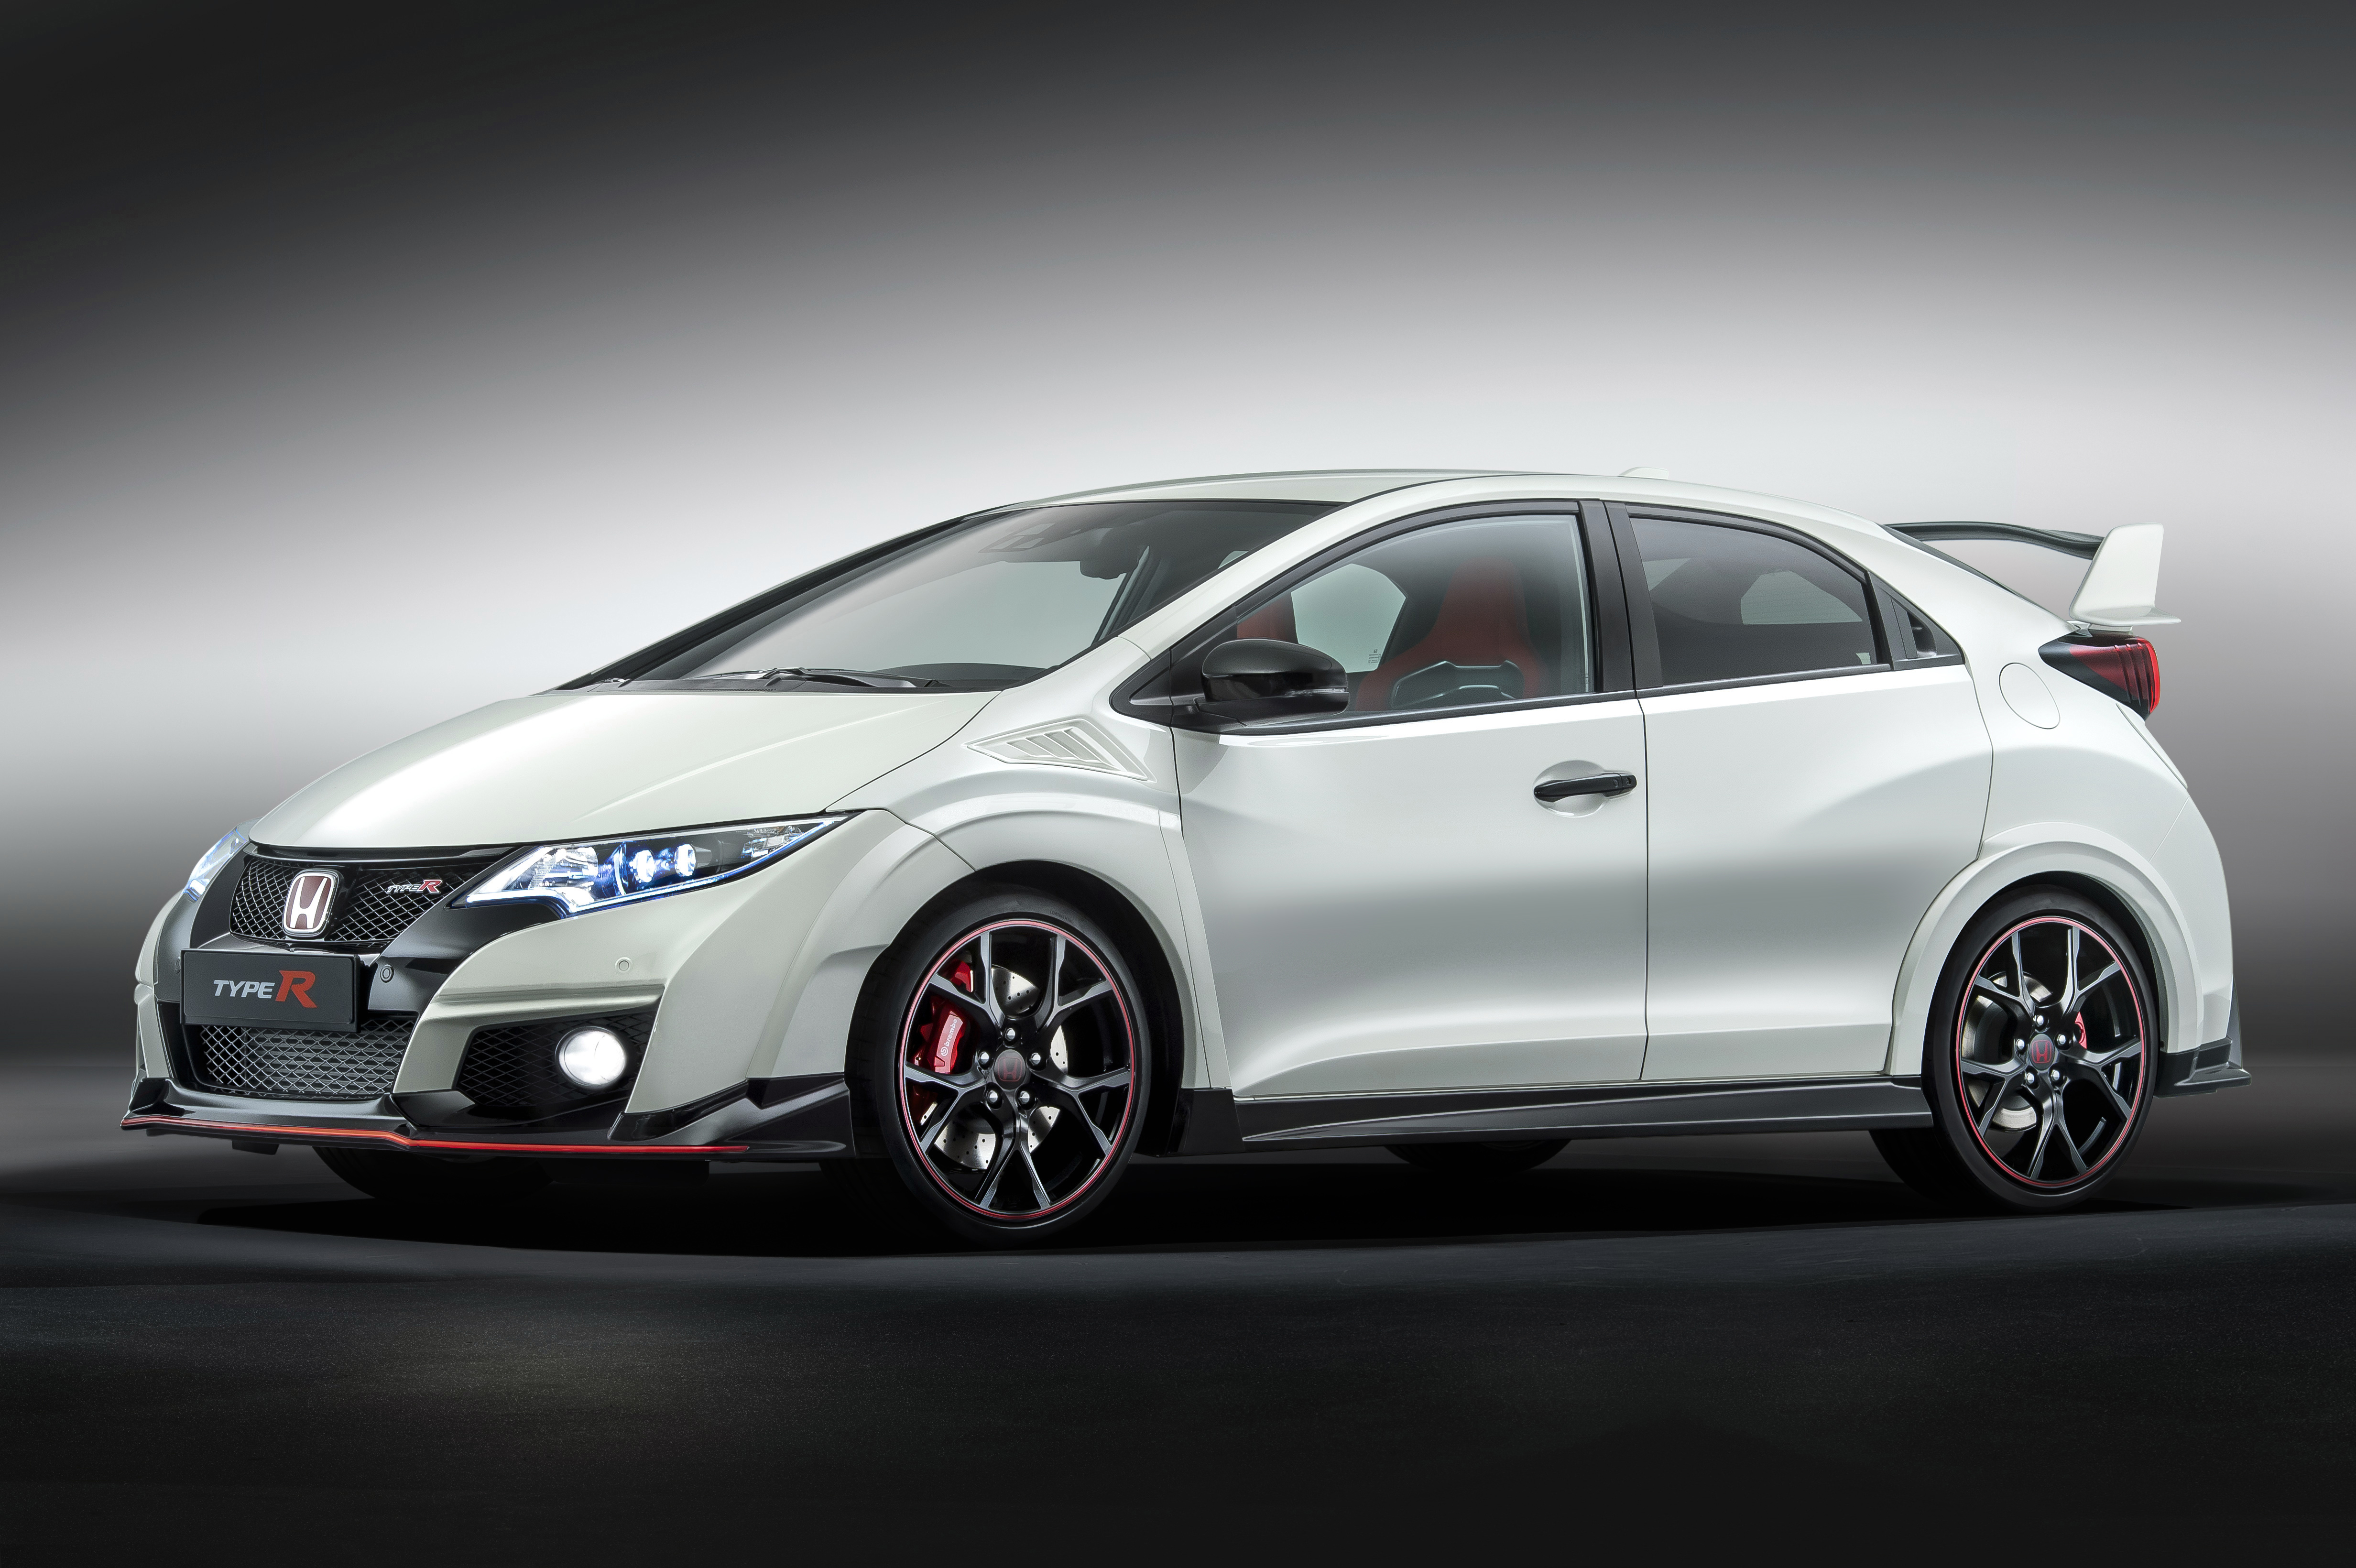 honda civic type r confirmed for america 8th generation honda civic forum. Black Bedroom Furniture Sets. Home Design Ideas